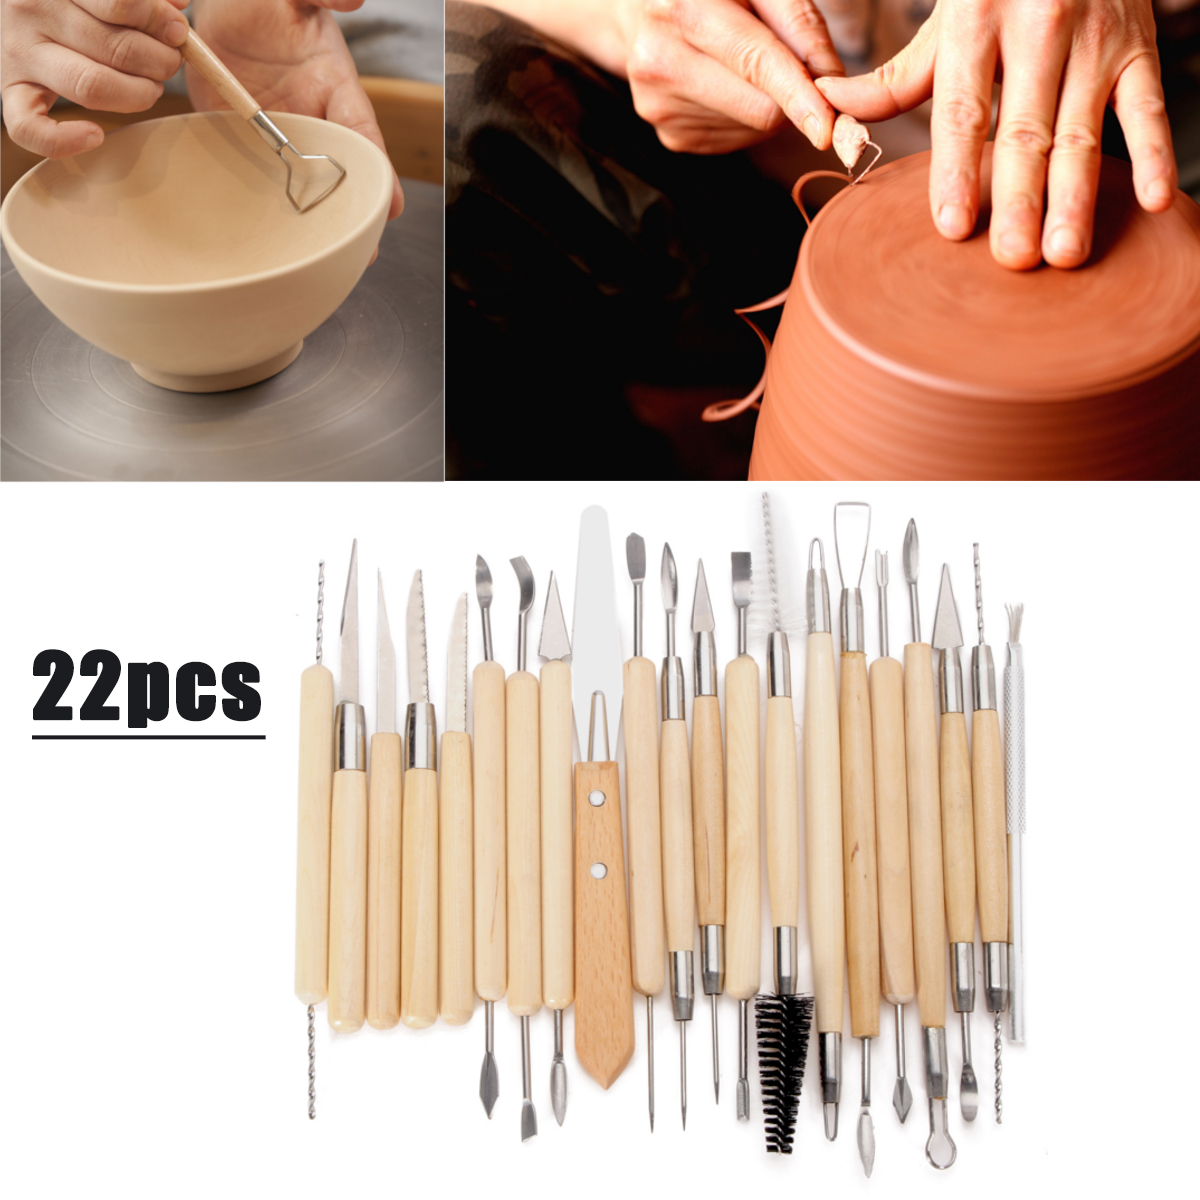 22pcs Clay Ceramics Carving Set Candle Pottery Tool Sculpting Making Modelling